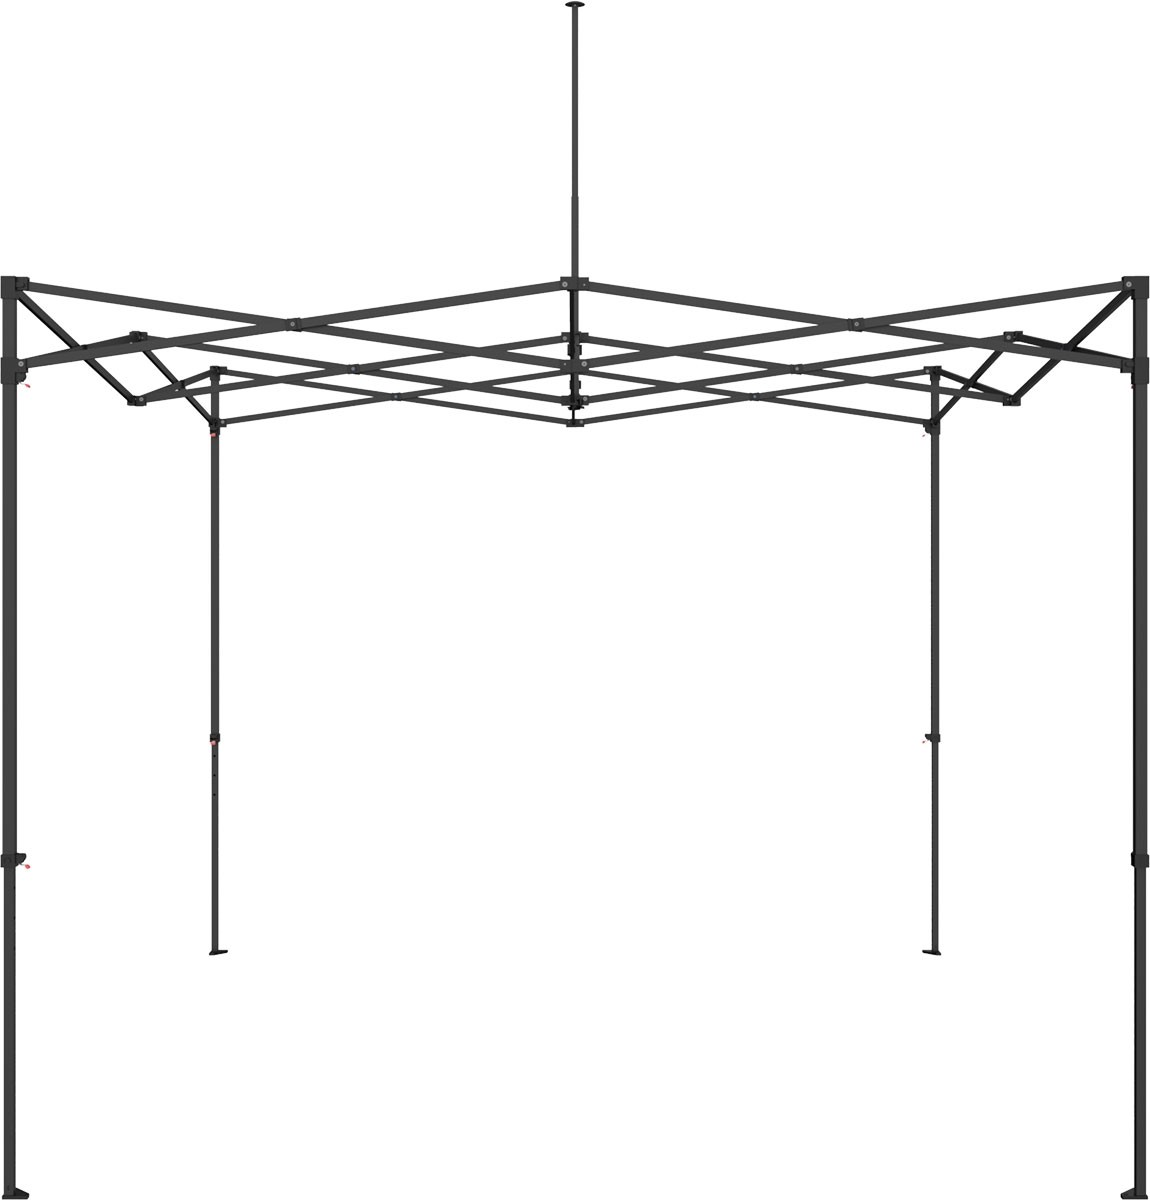 Economy Canopy Tent Kit solid color